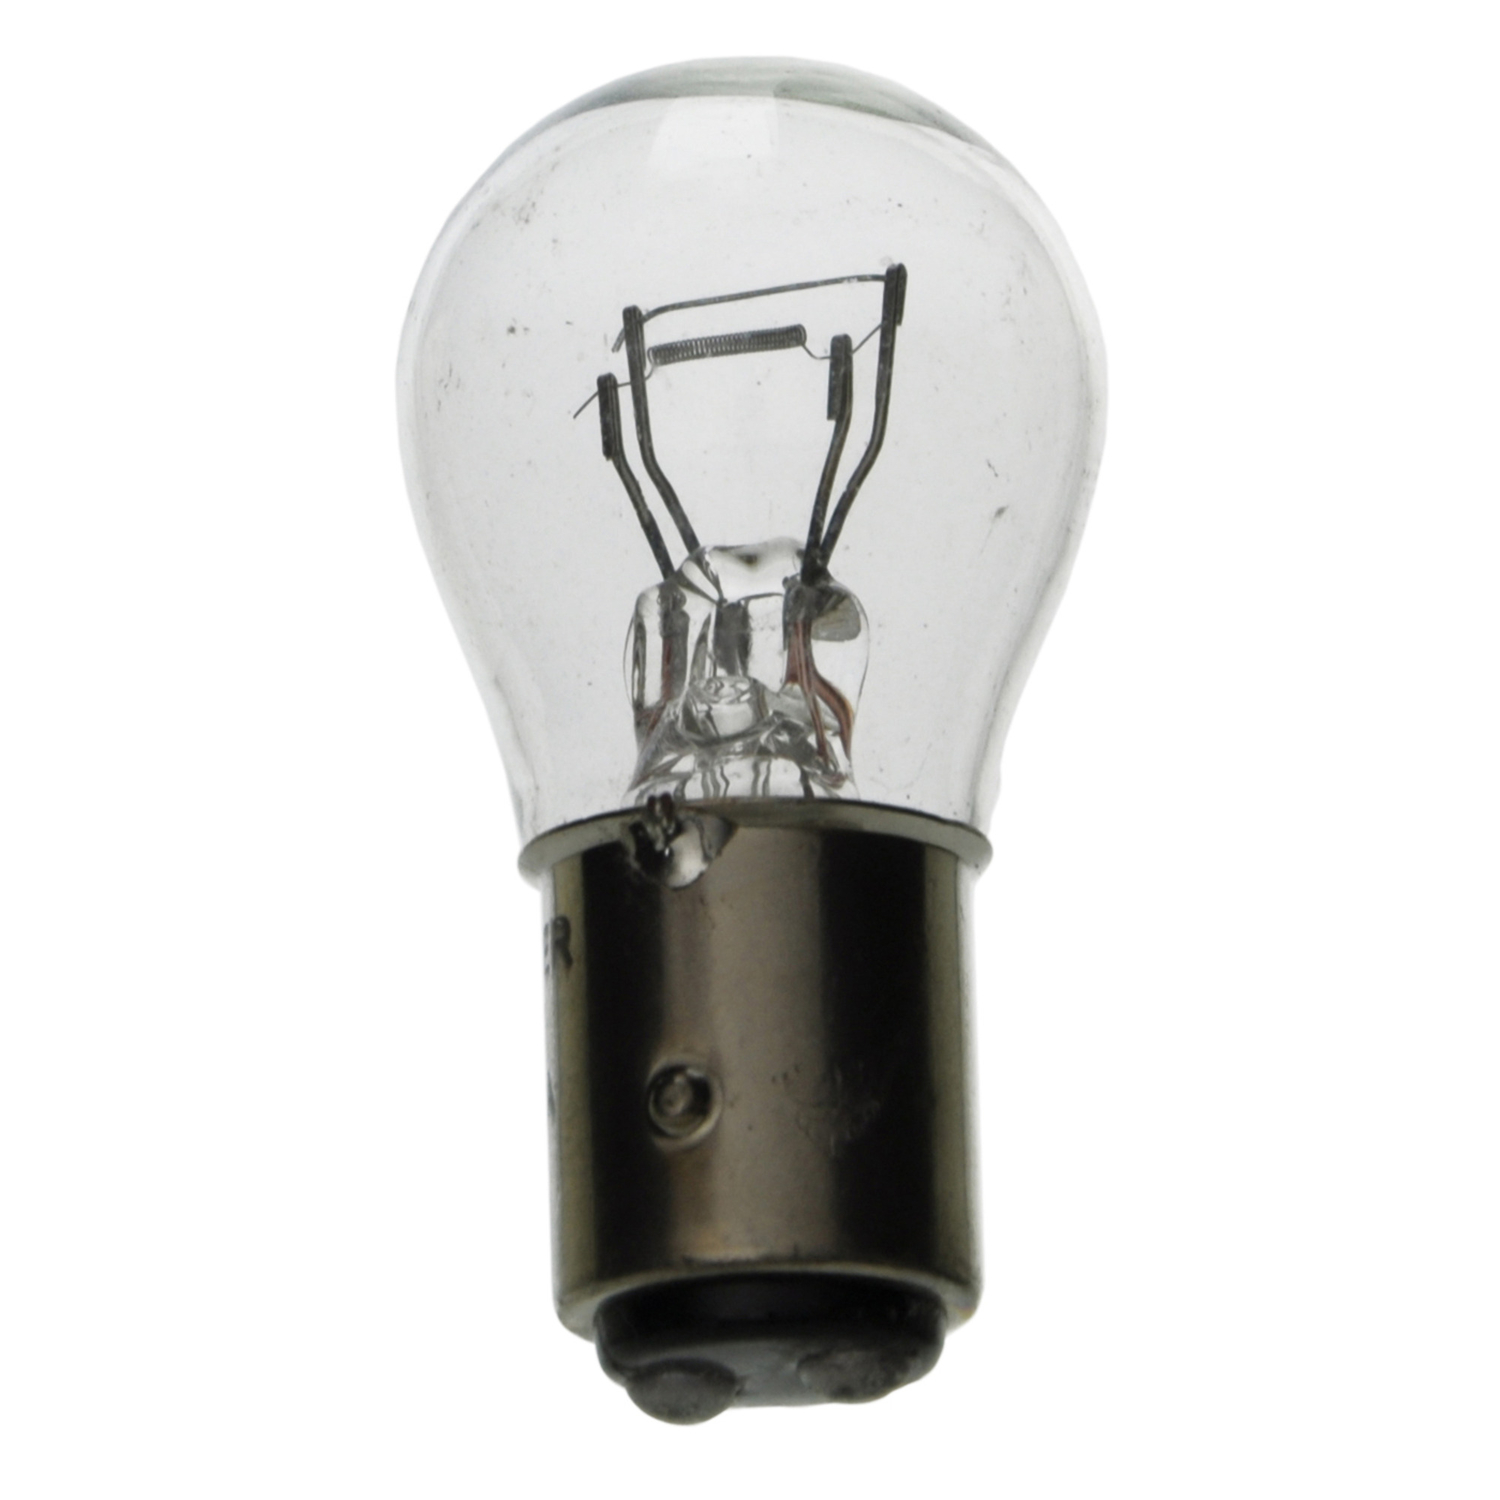 WAGNER LIGHTING - Tail Light Bulb - WLP 1157